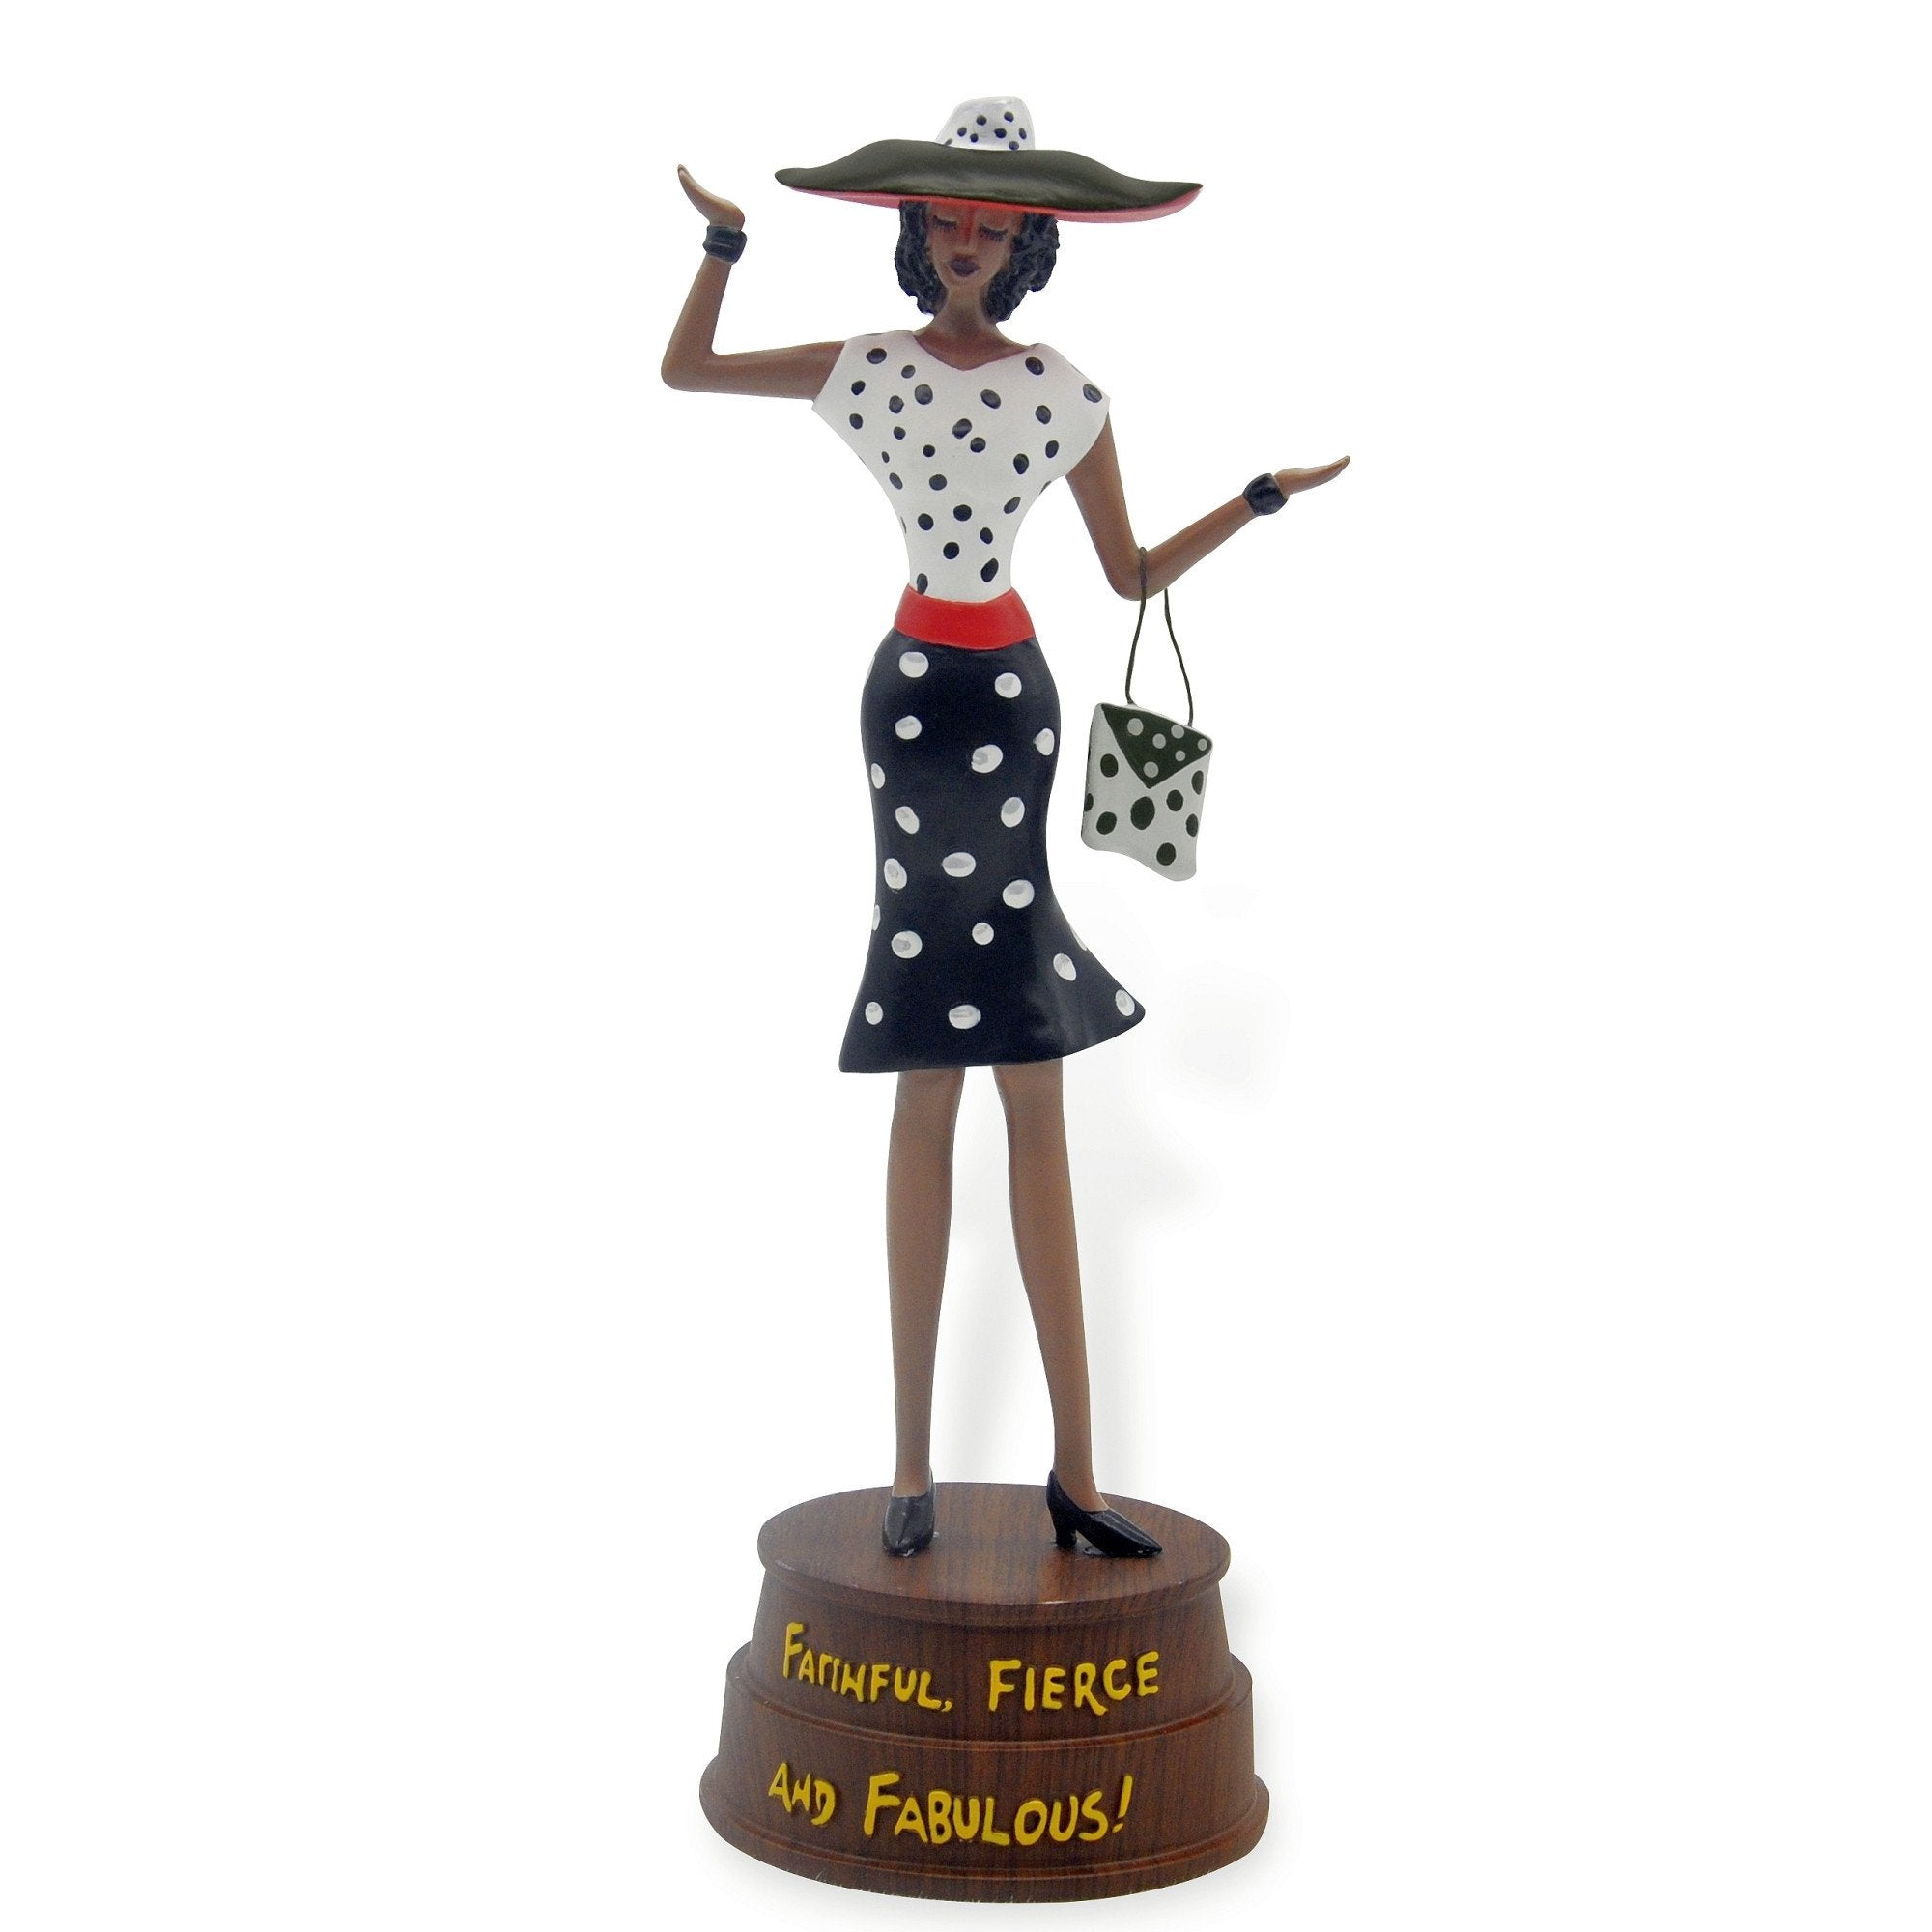 Faithful, Fierce and Fabulous: Cidne Wallace Figurine by Shades of Color